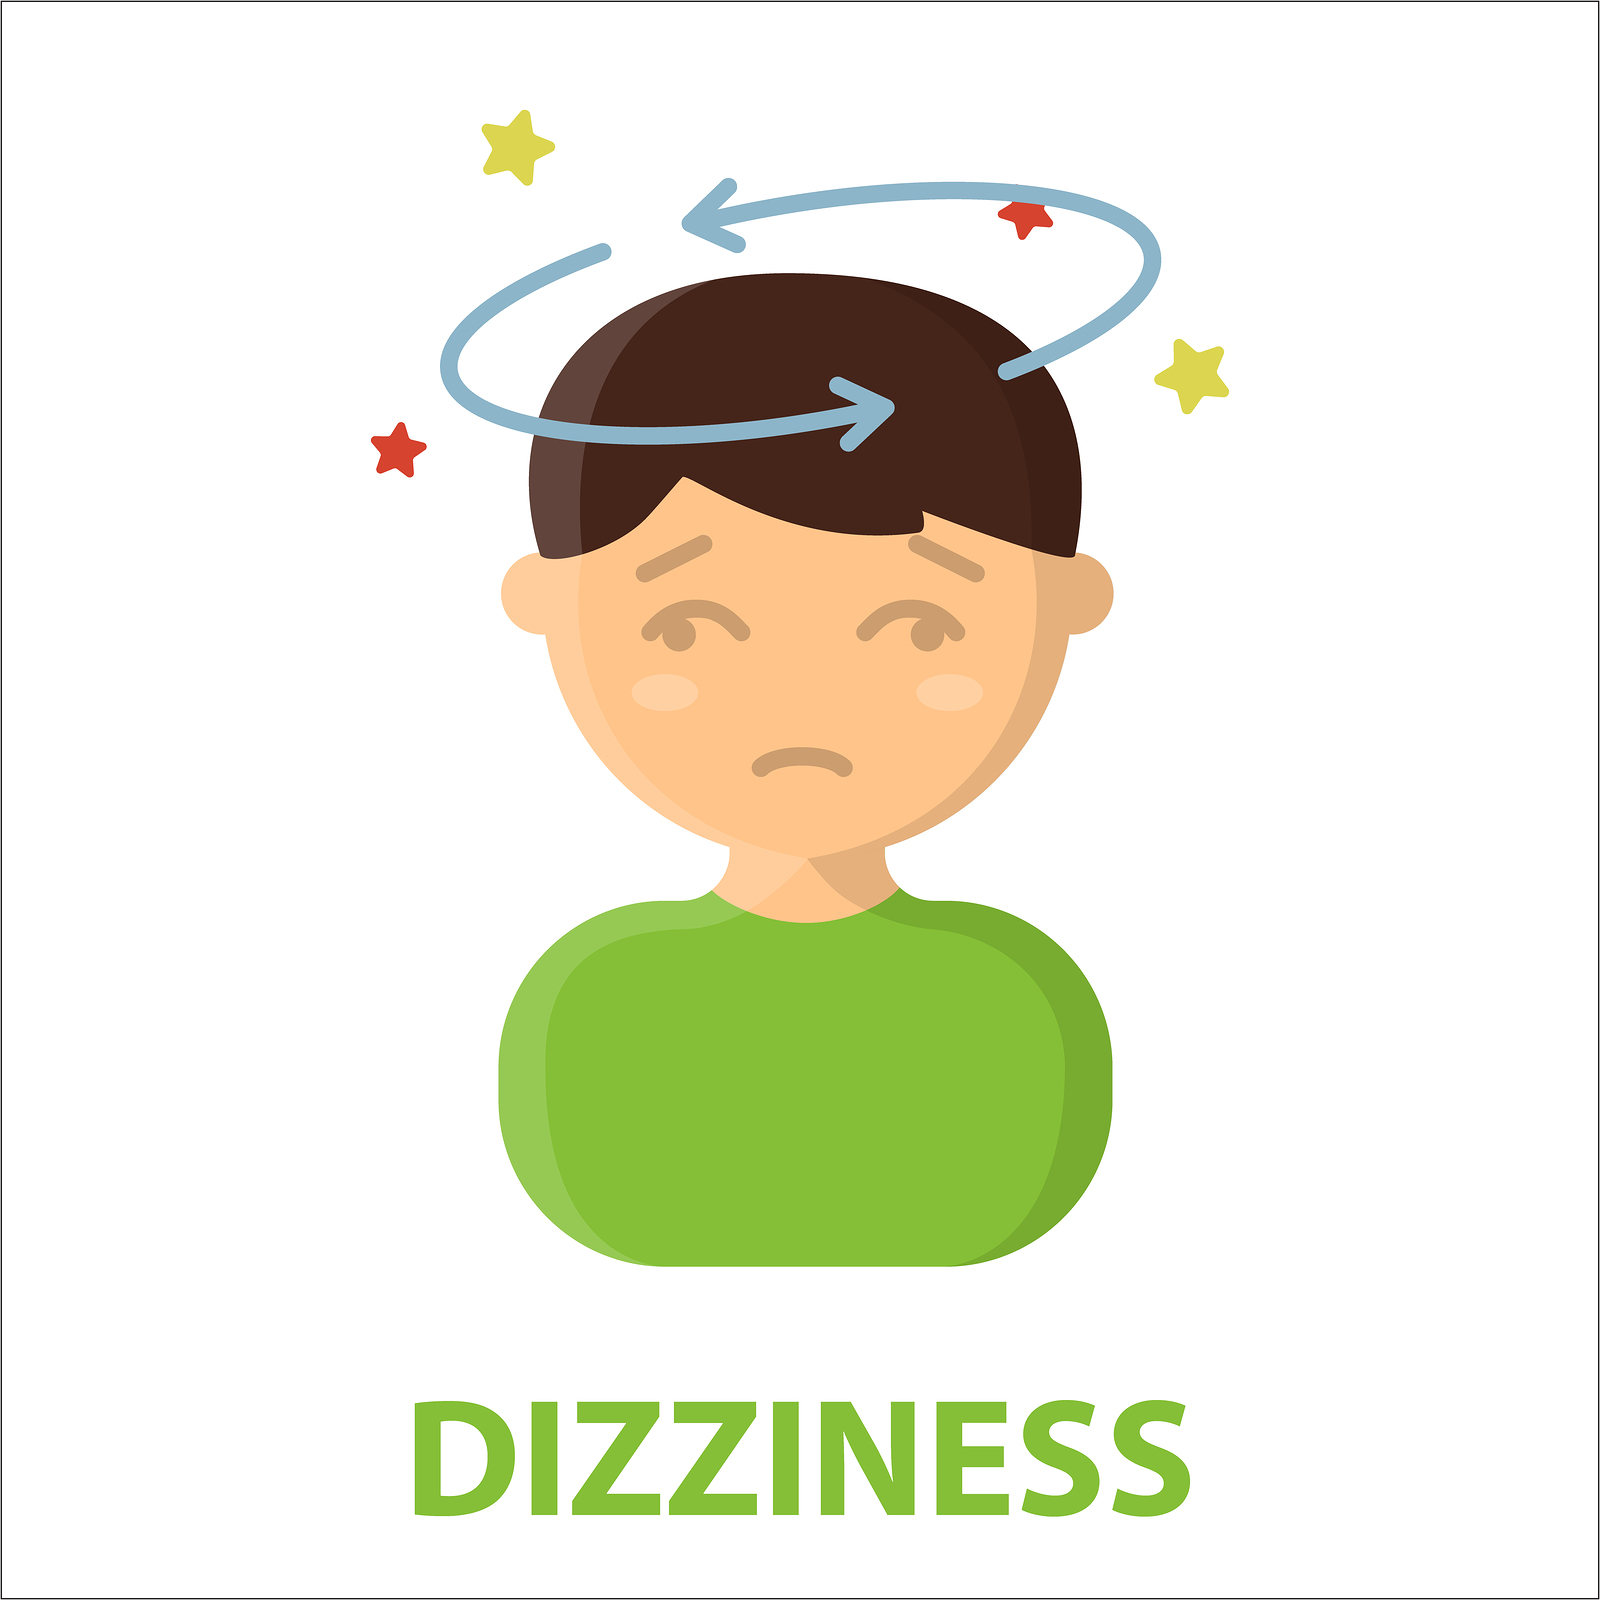 Clinical Decision Making in the Management of Patients With Cervicogenic Dizziness: A Case Series.